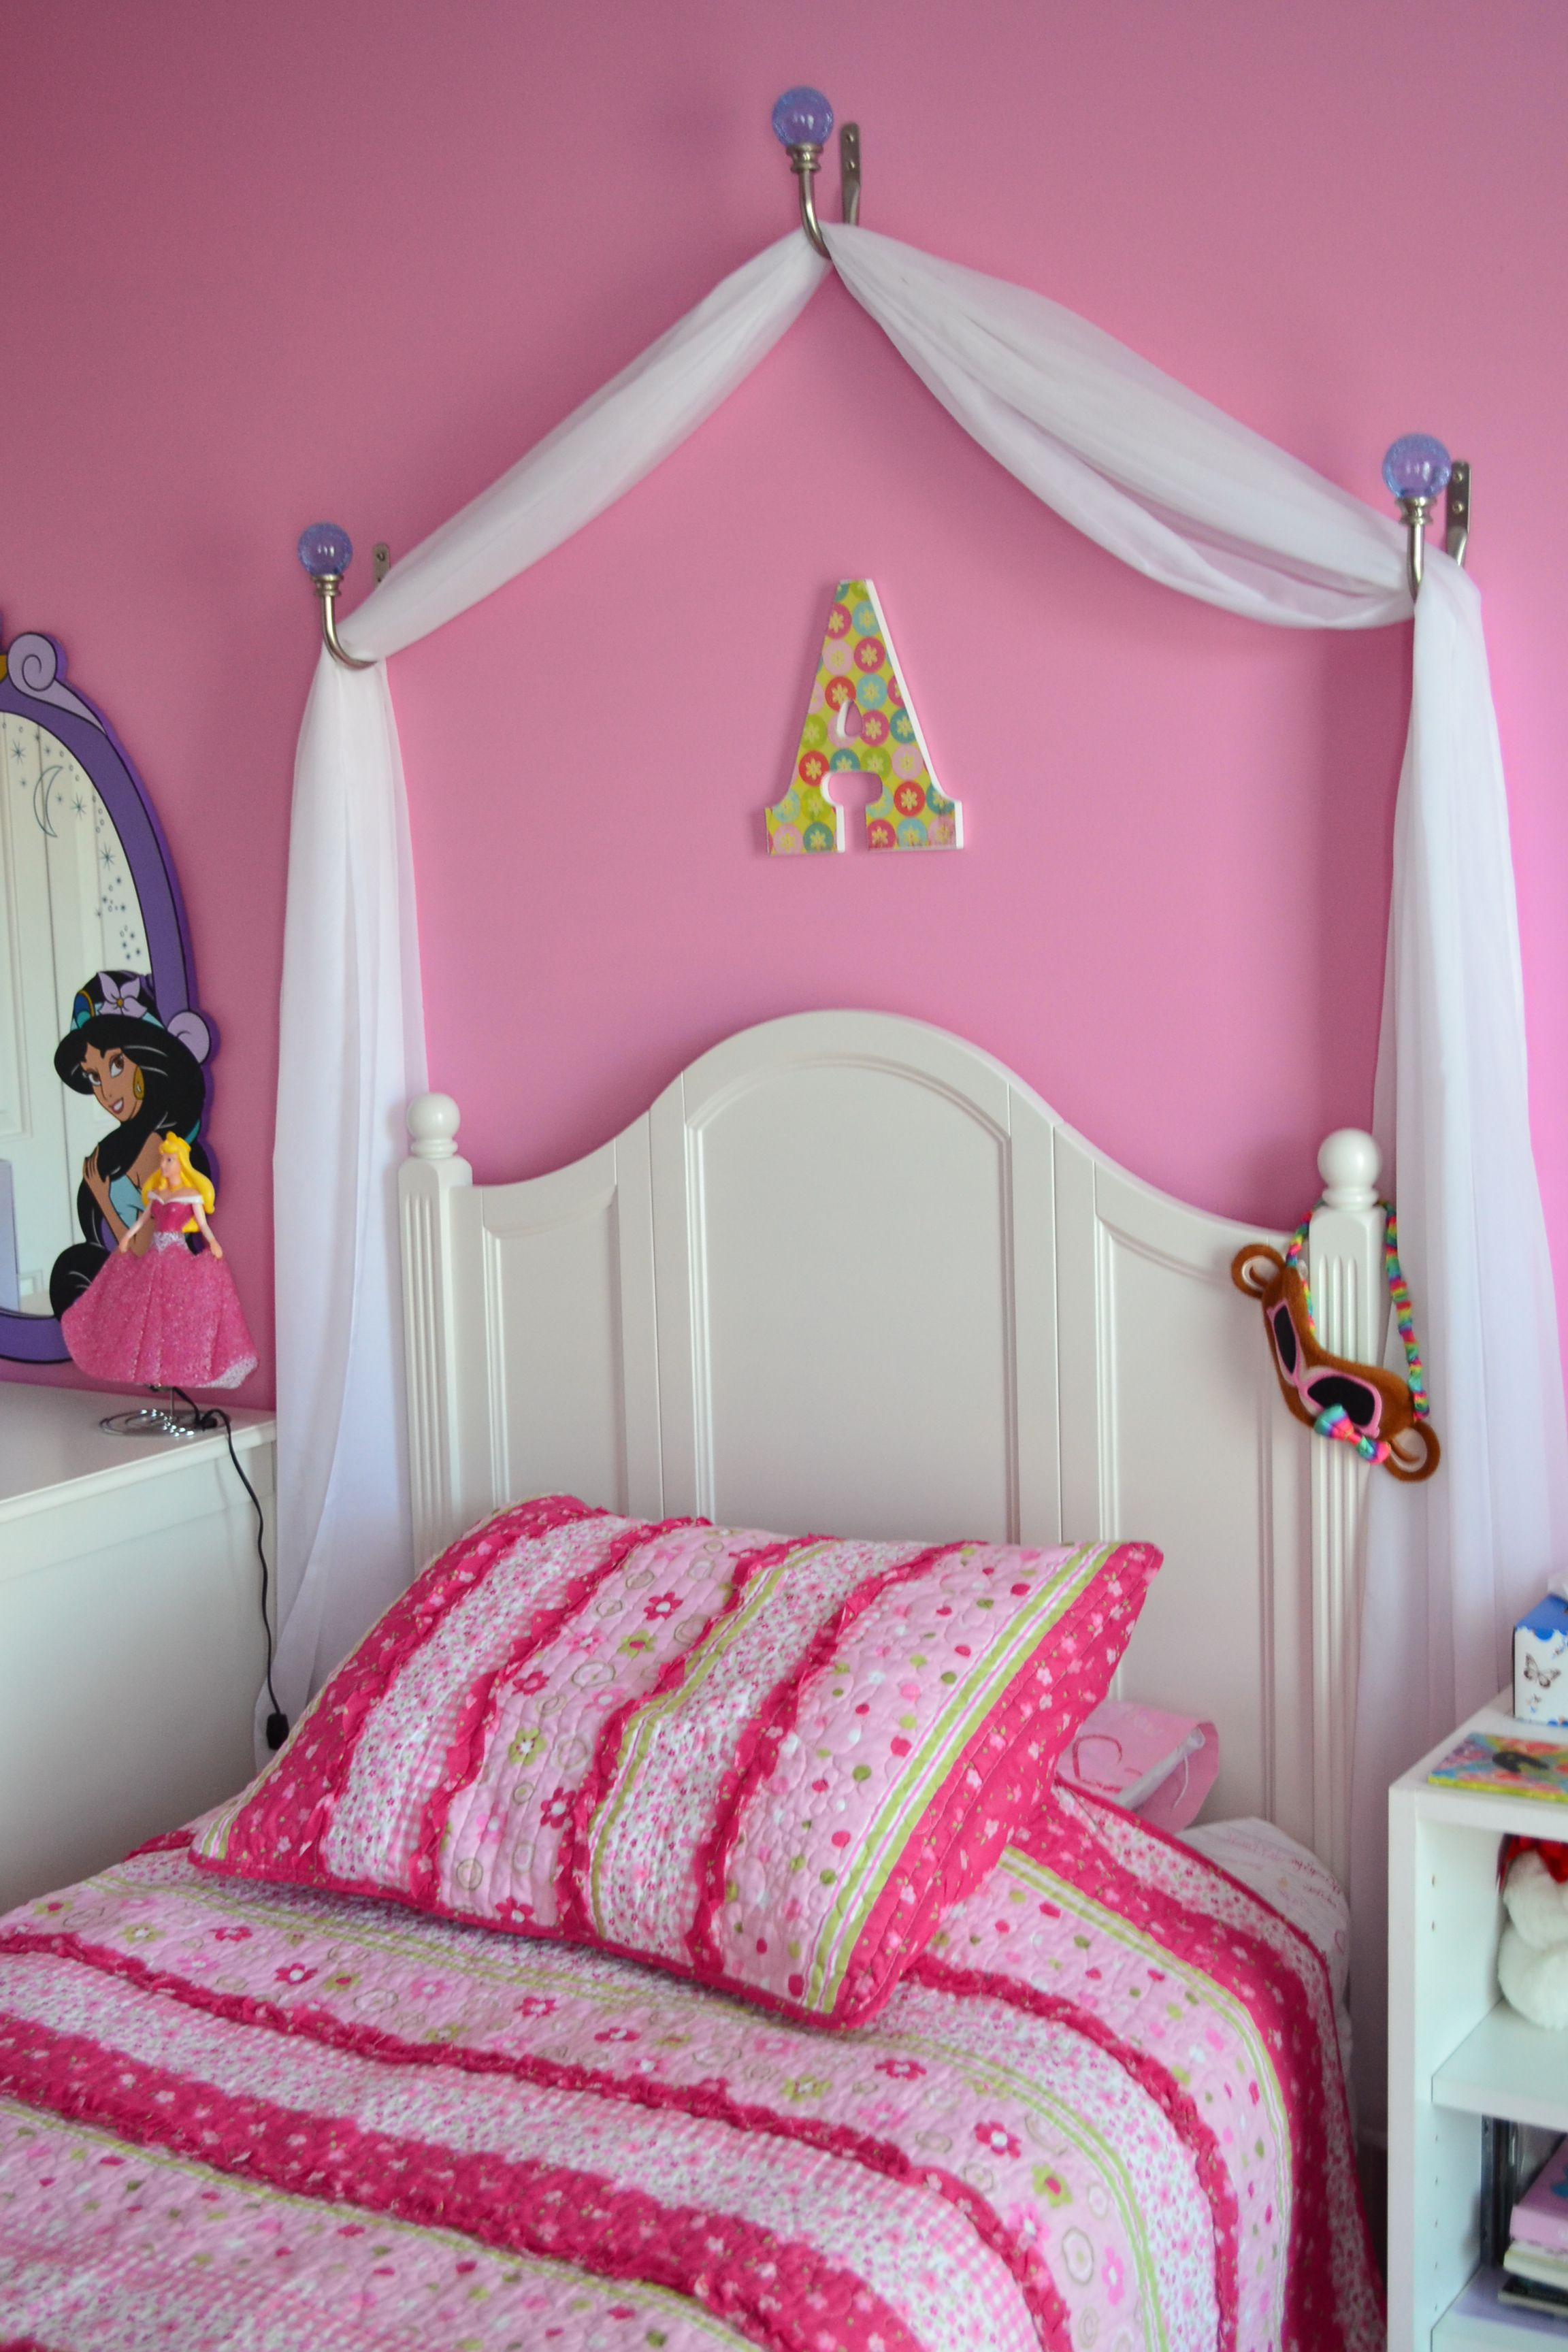 Princess Bed Blueprints Creating A Disney Princess Room On A Budget Homemade Canopy